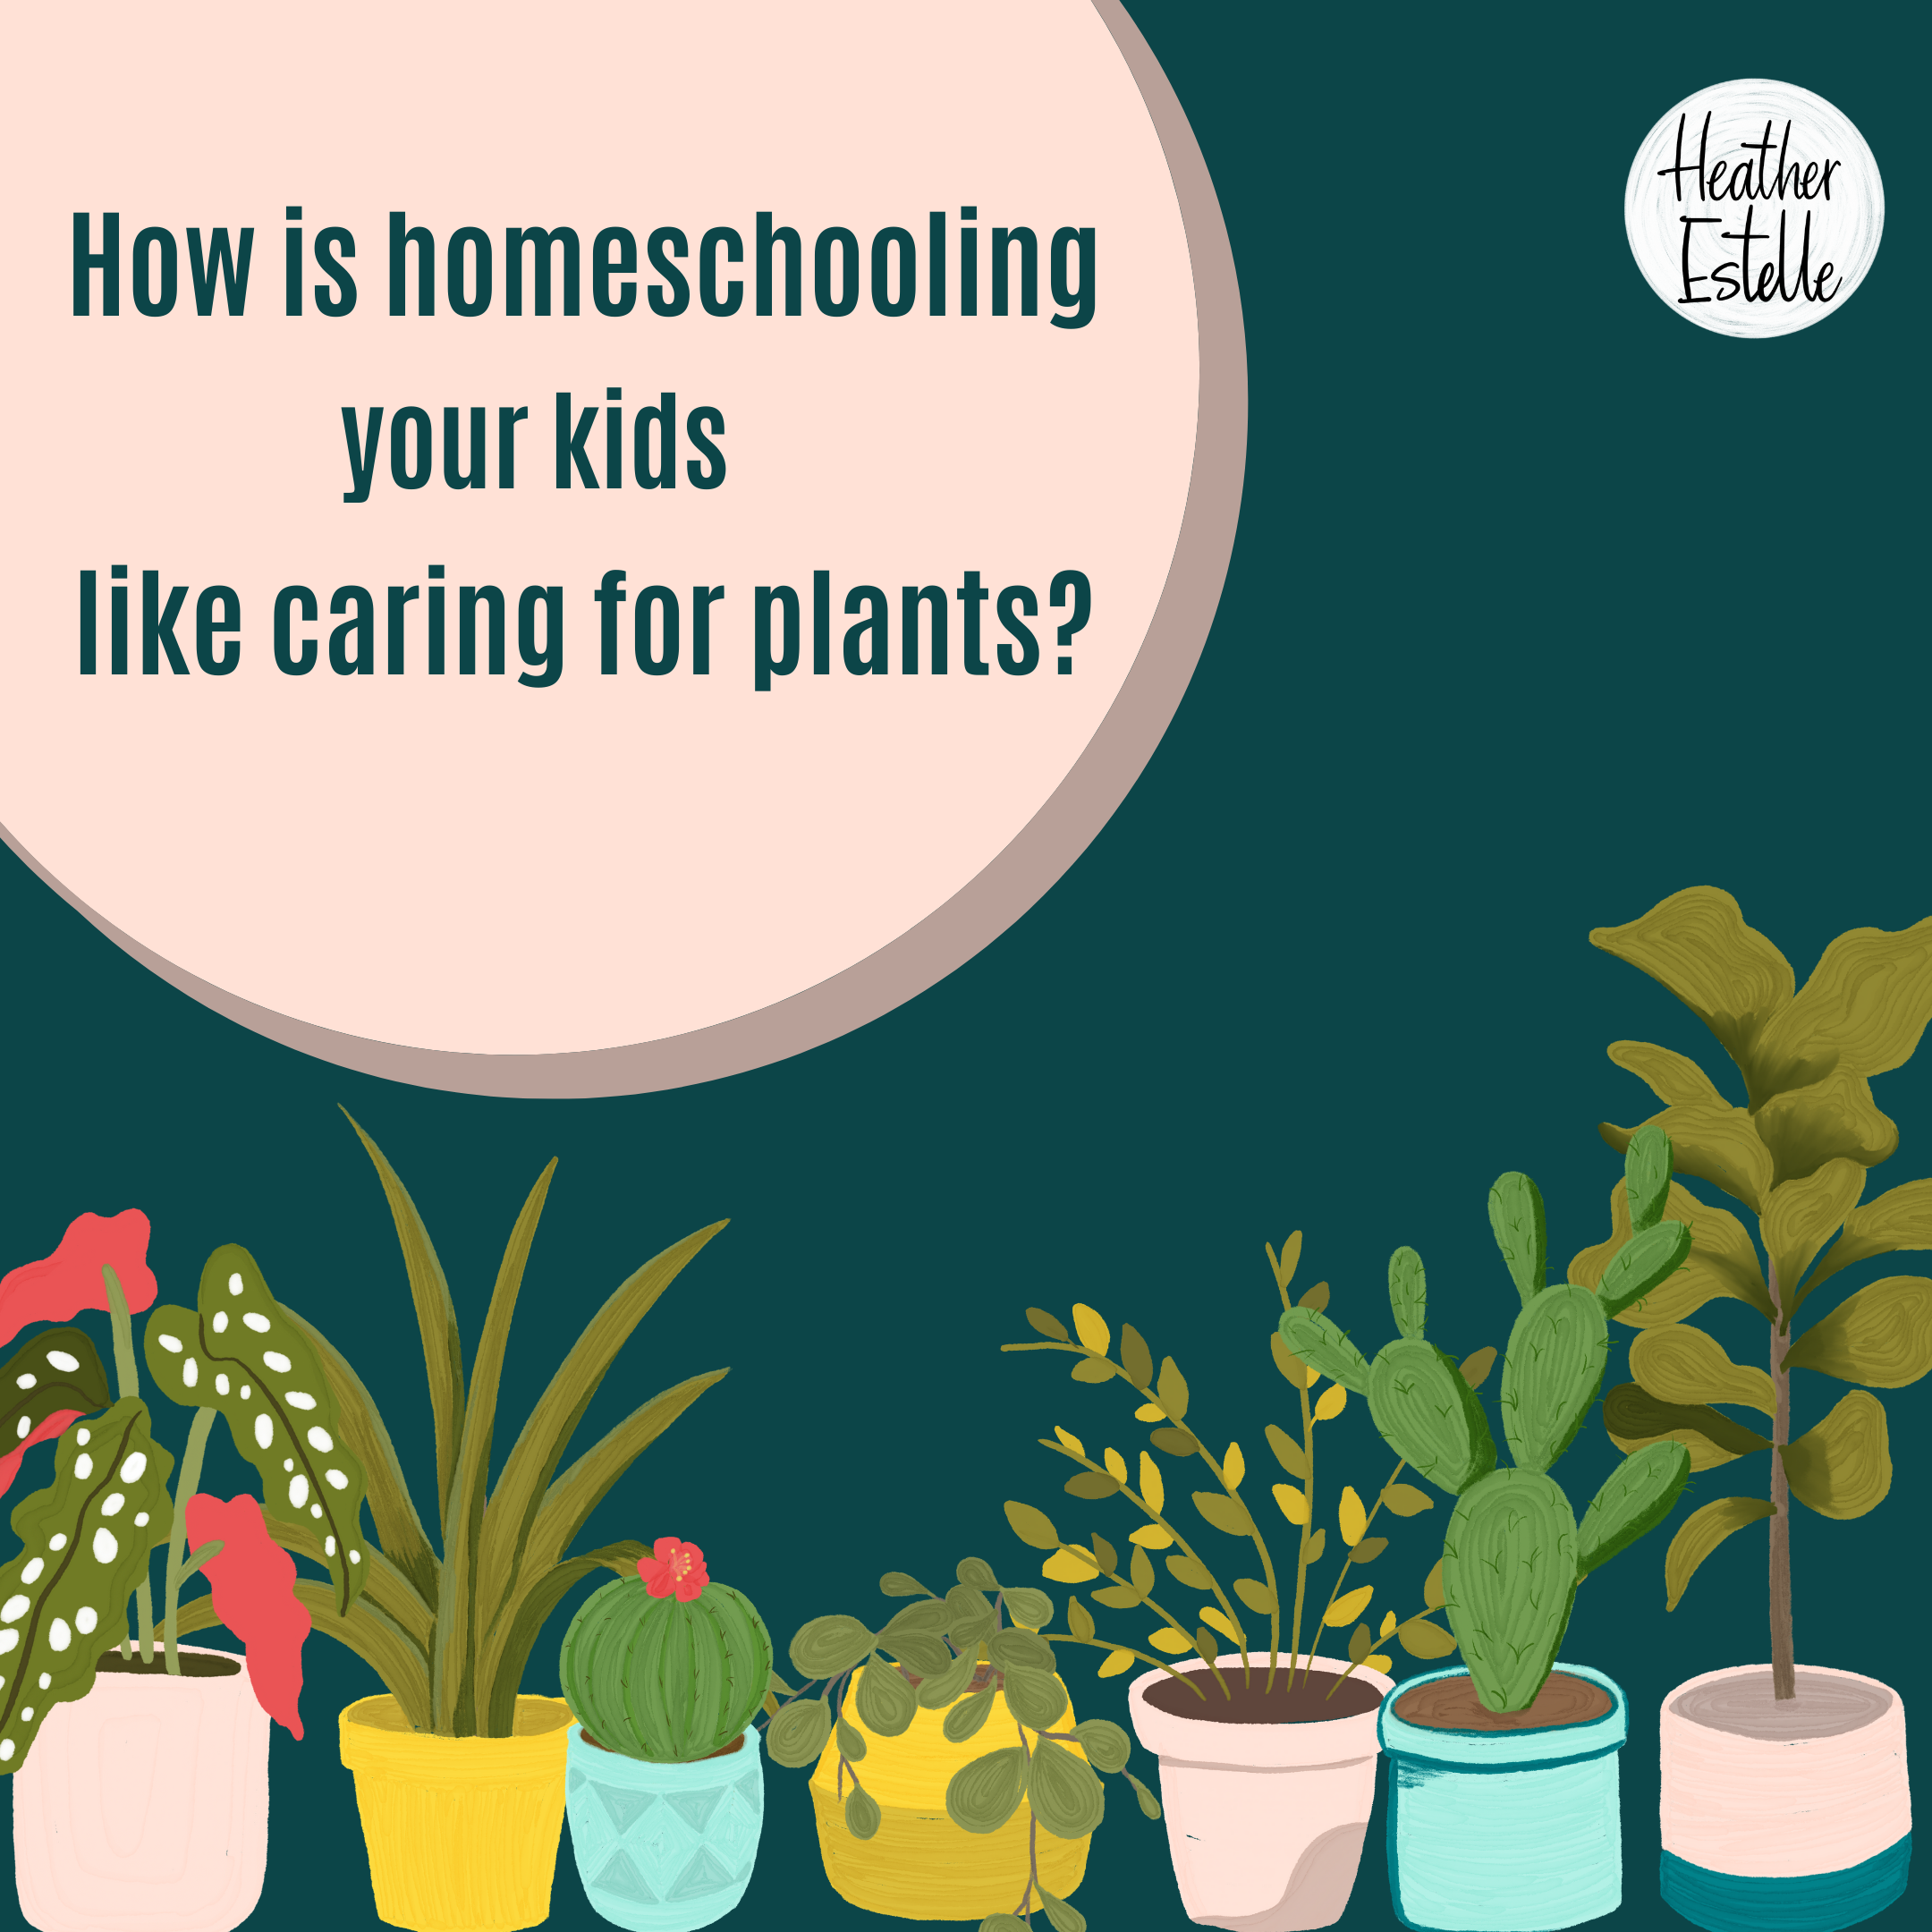 How is homeschooling your kids like caring for plants?